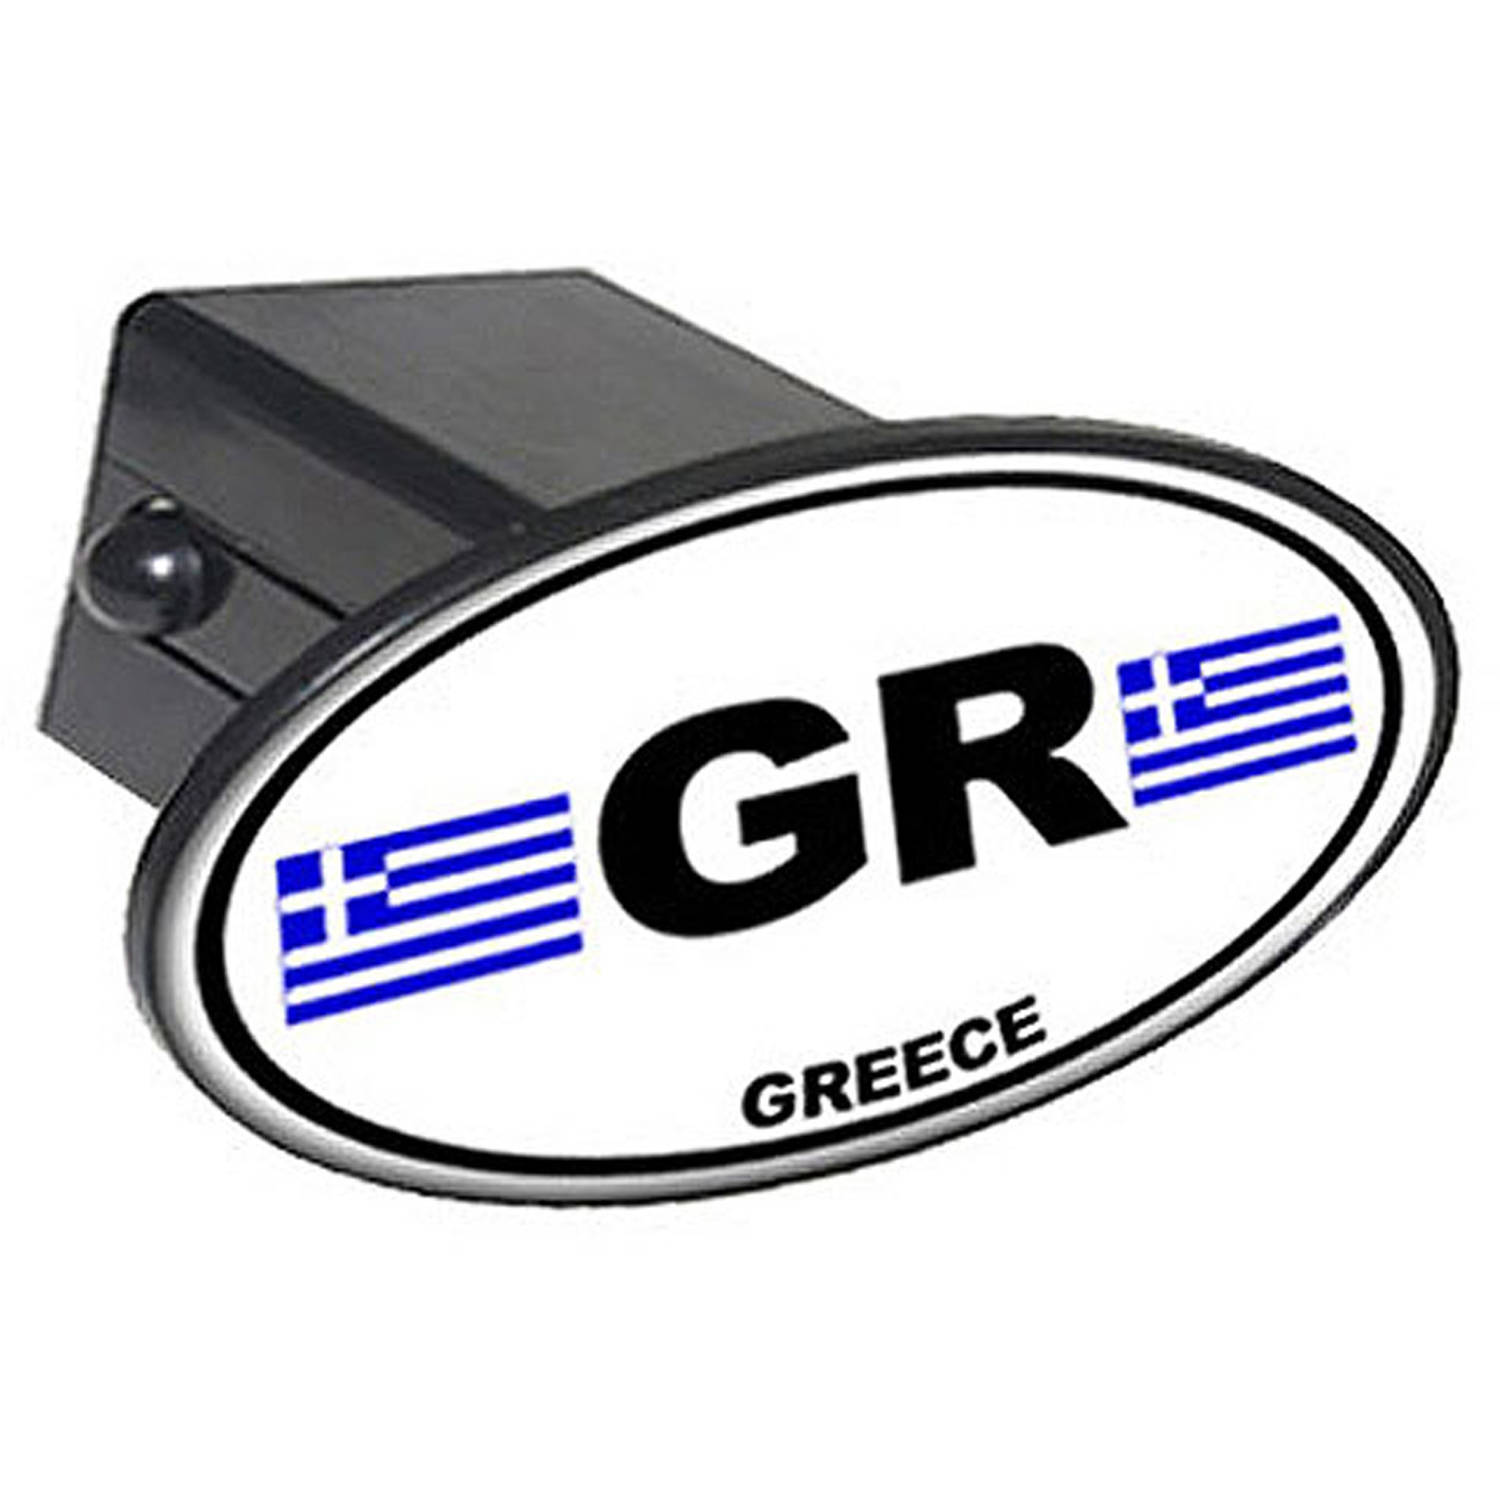 "Gr Greece Country Euro Auto Oval 2"" Oval Tow Trailer Hitch Cover Plug Insert"